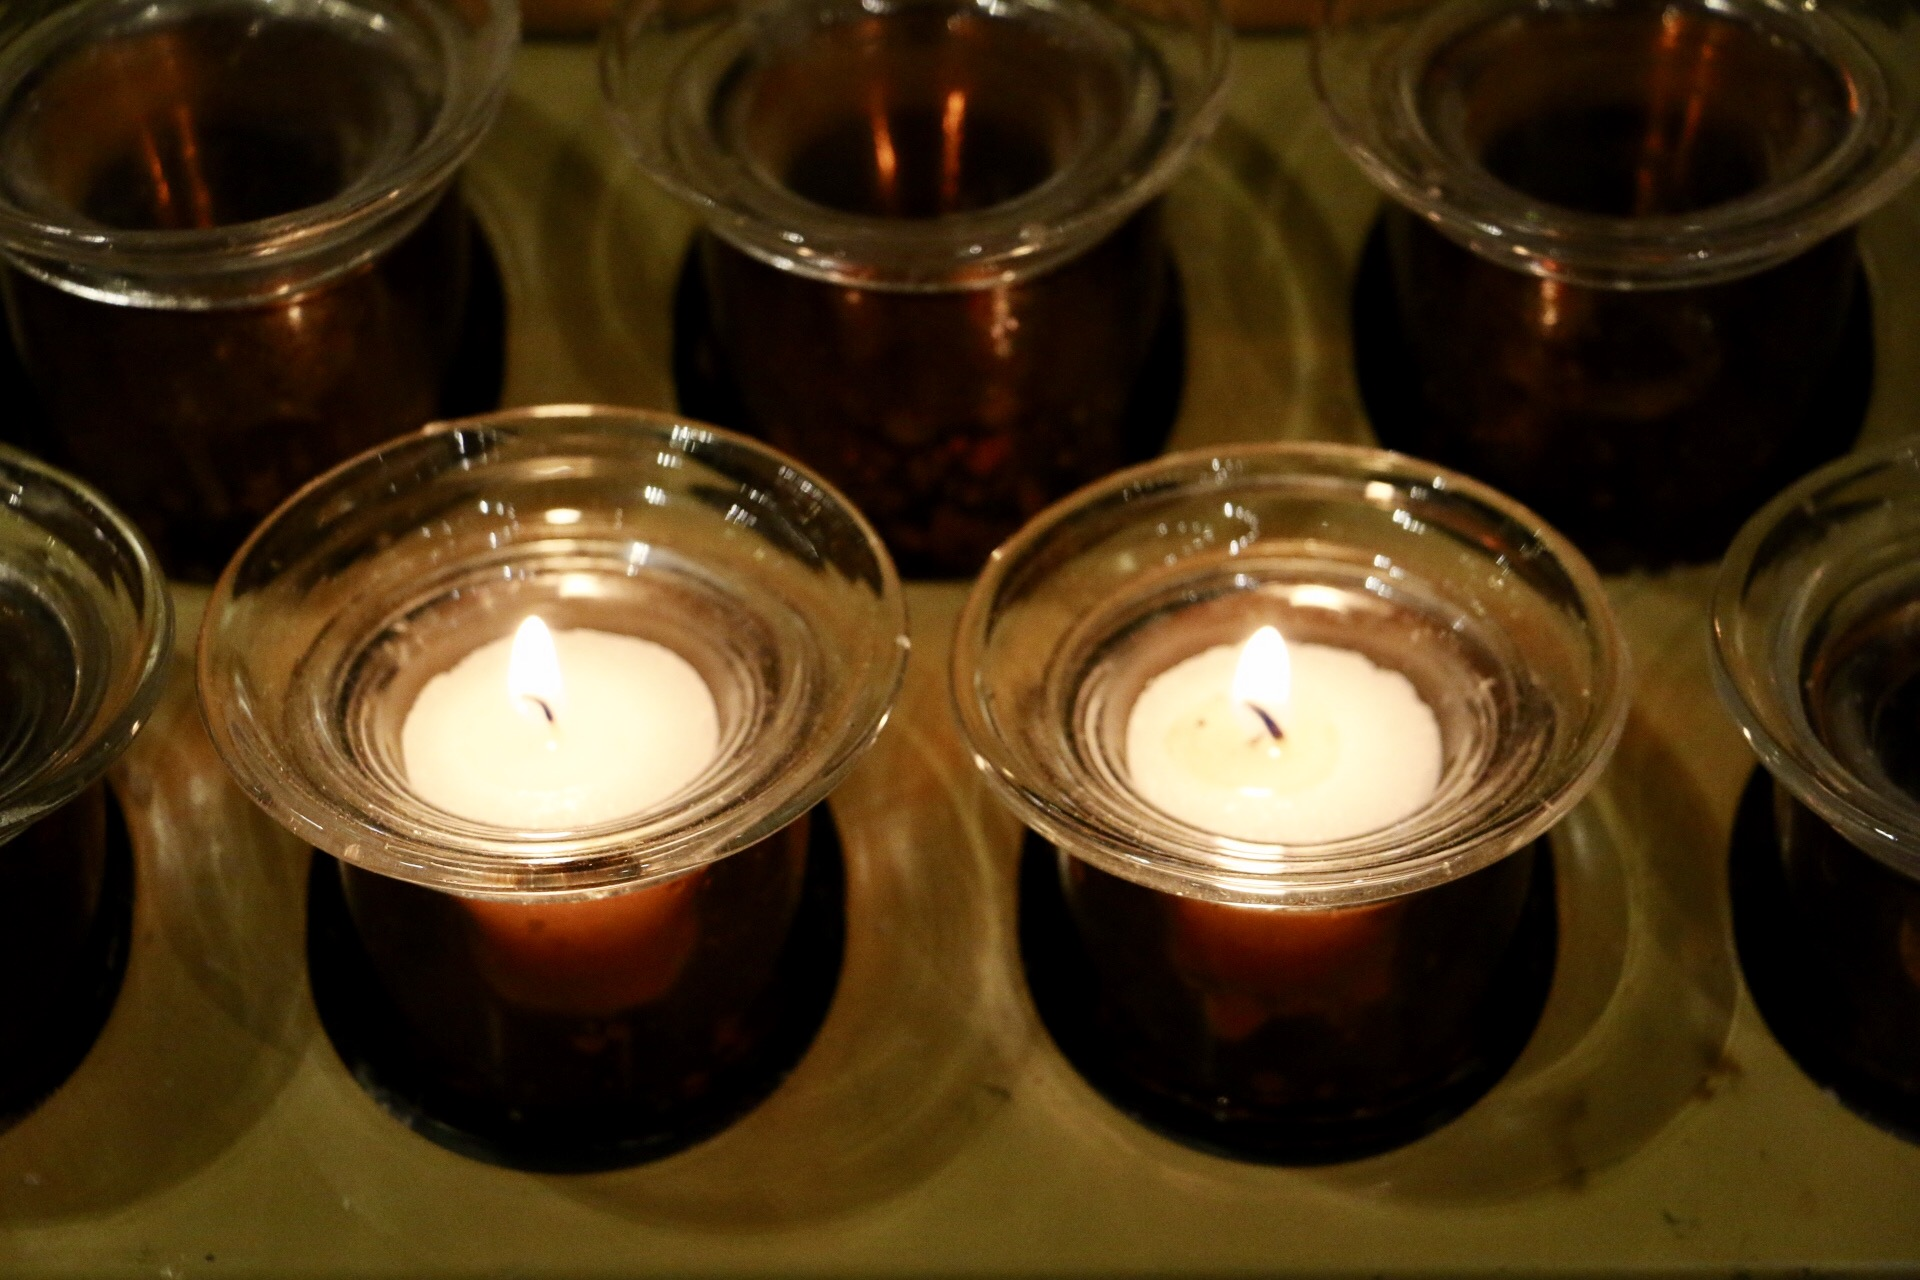 Candles-Miscarriage.jpg#asset:280